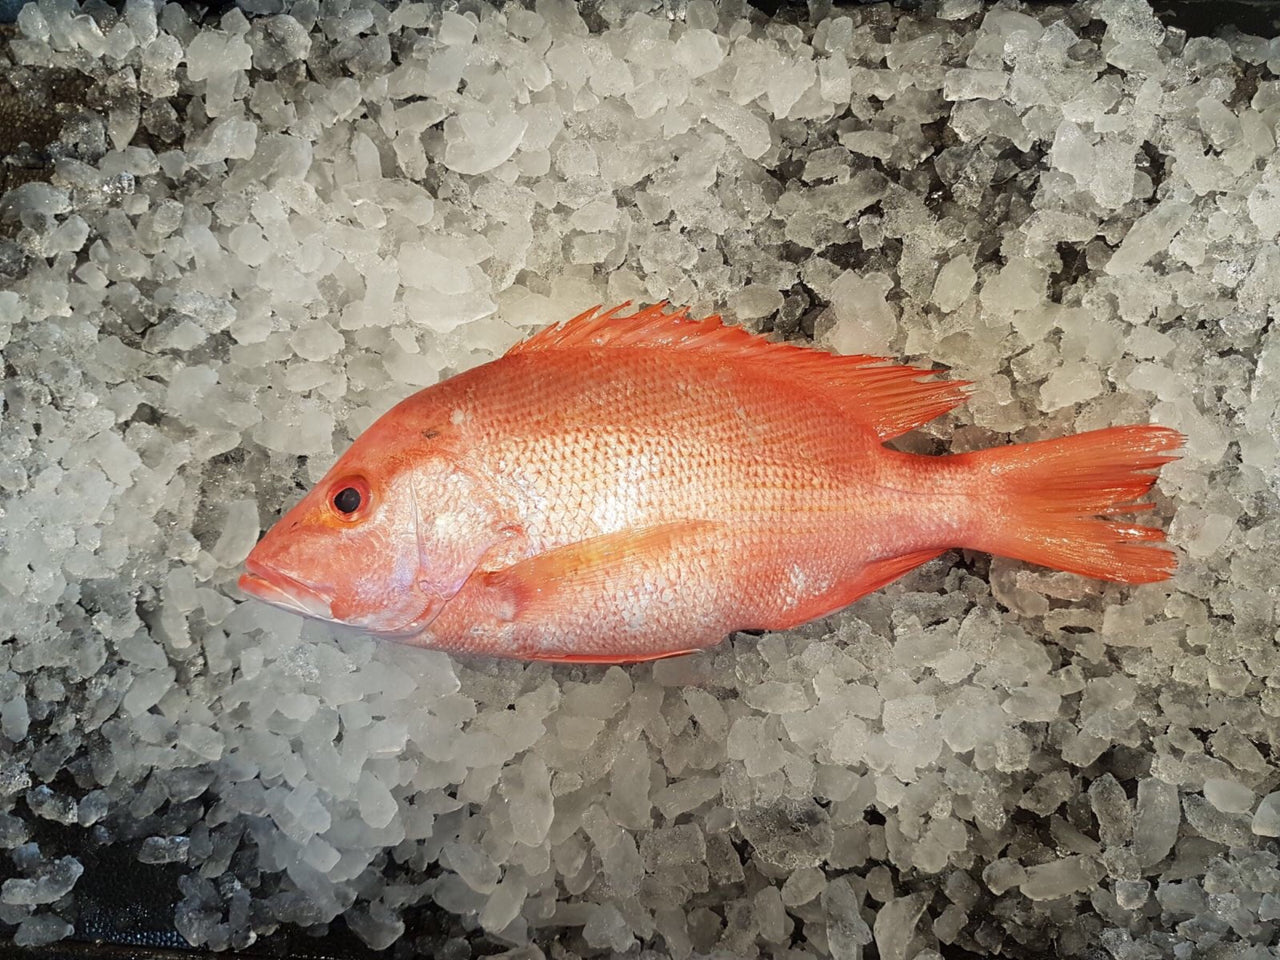 dishthefish Wild caught Red Snapper 红鸡 fresh fish third generation fishmonger singapore fresh seafood supplier singapore